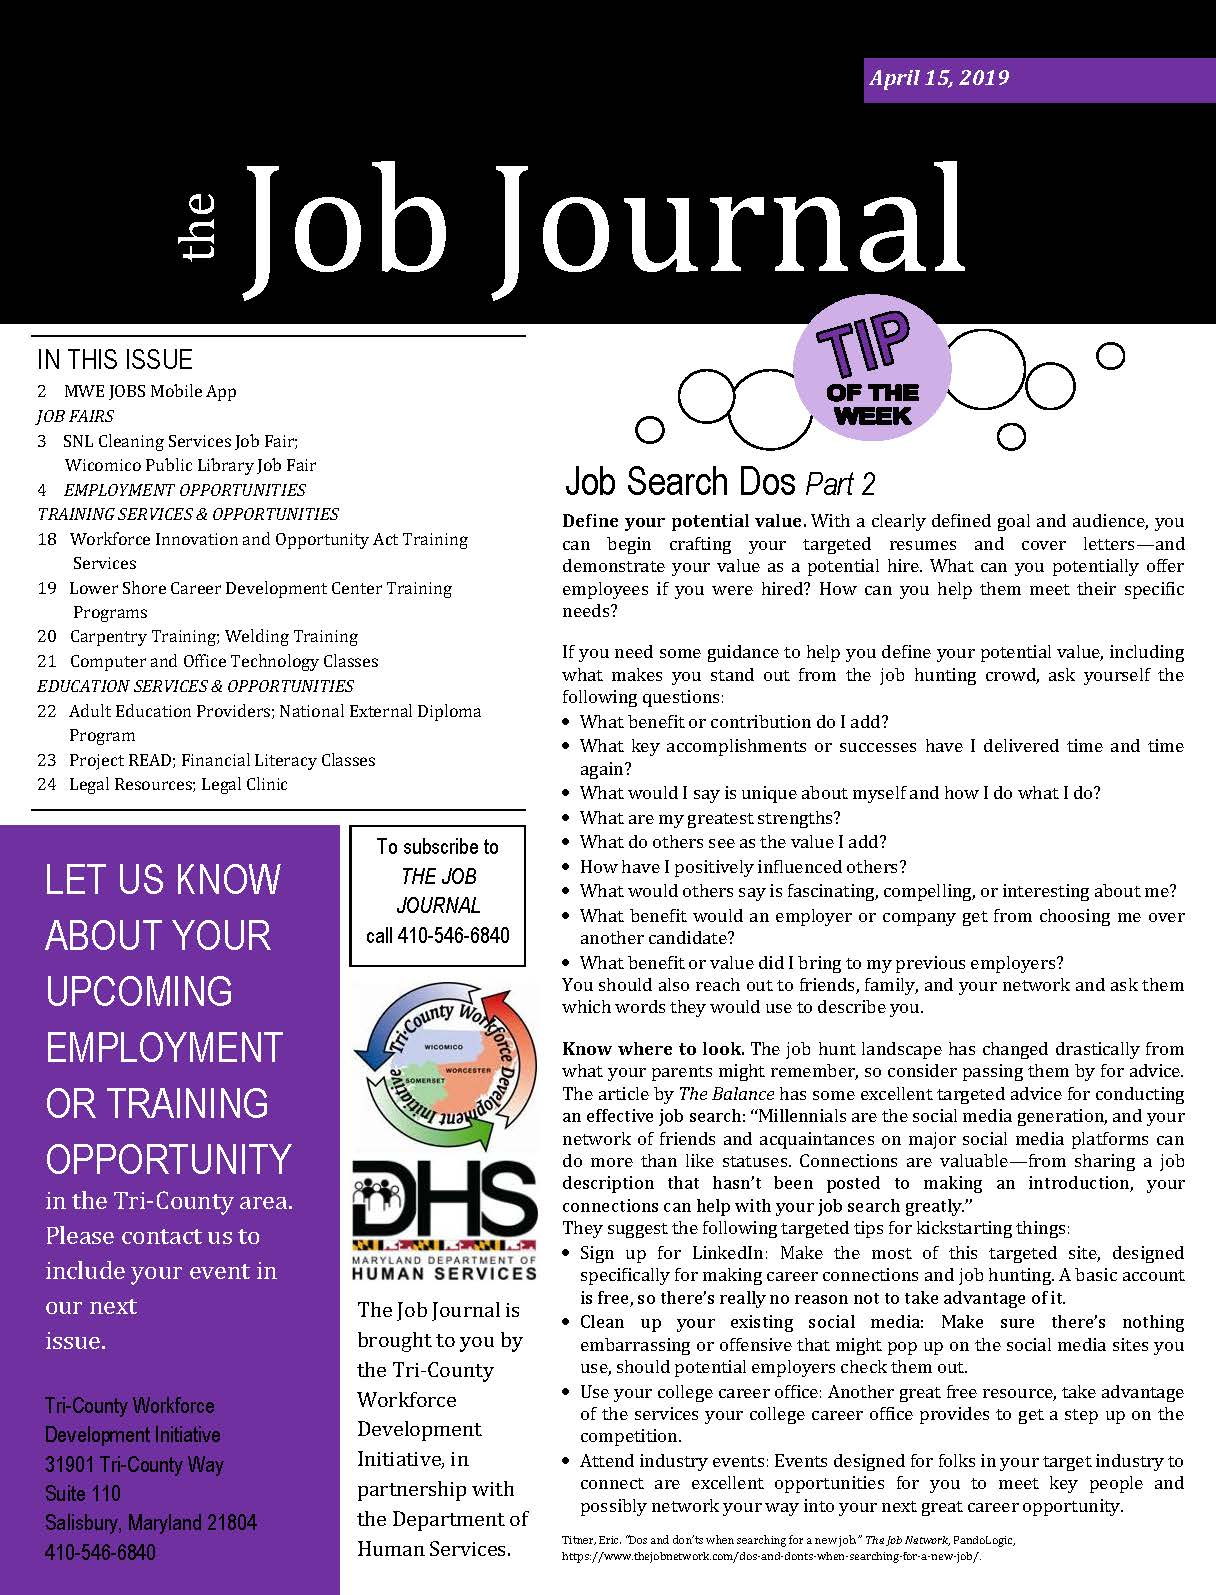 Front page of the April 15, 2019 Job Journal